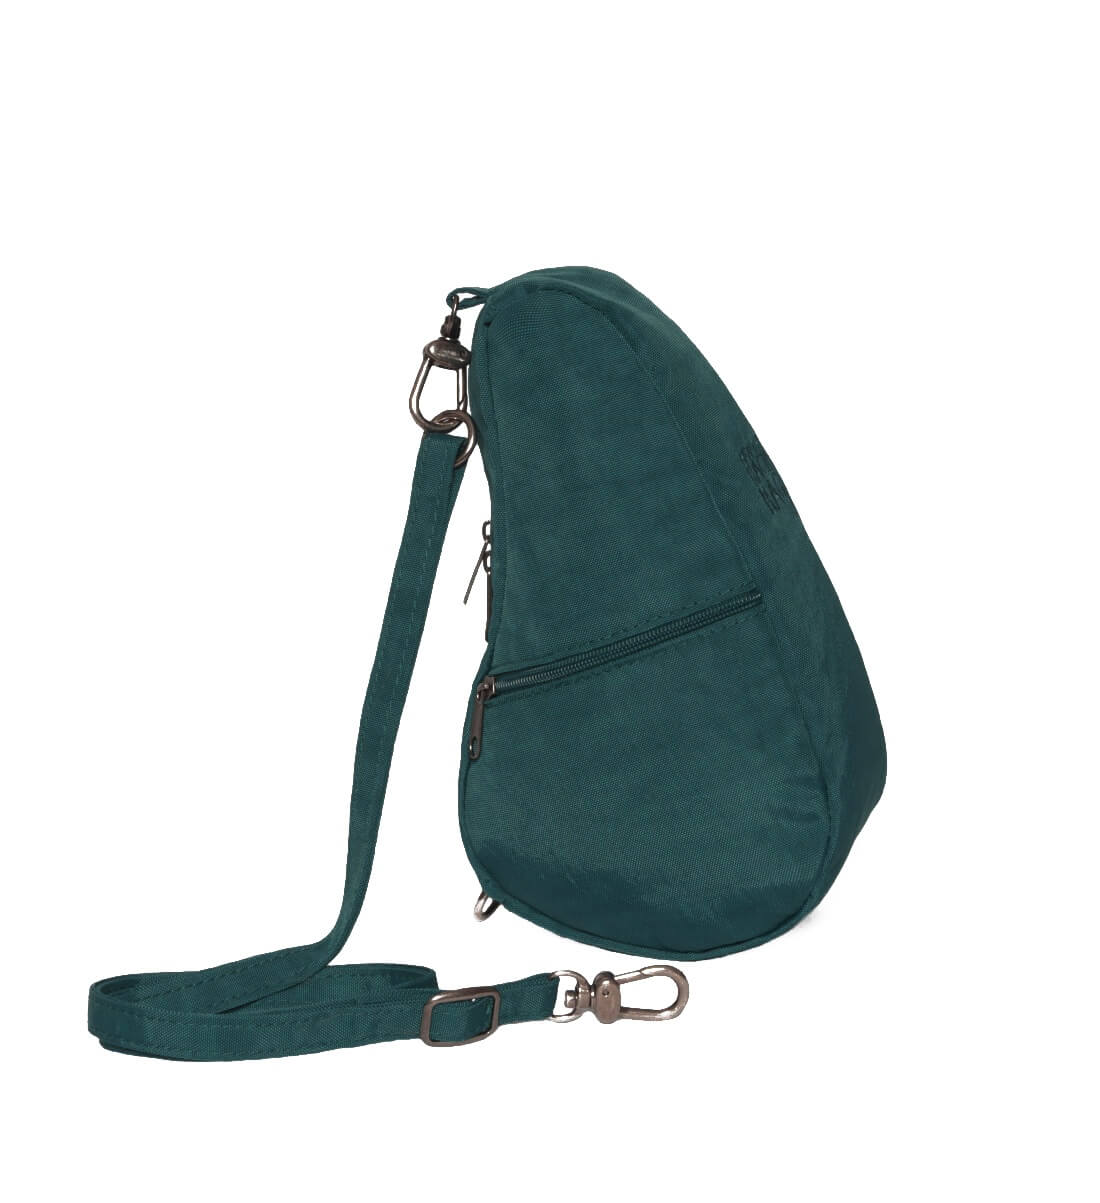 Healthy Back Bag Baglett Textured Dark Teal-0